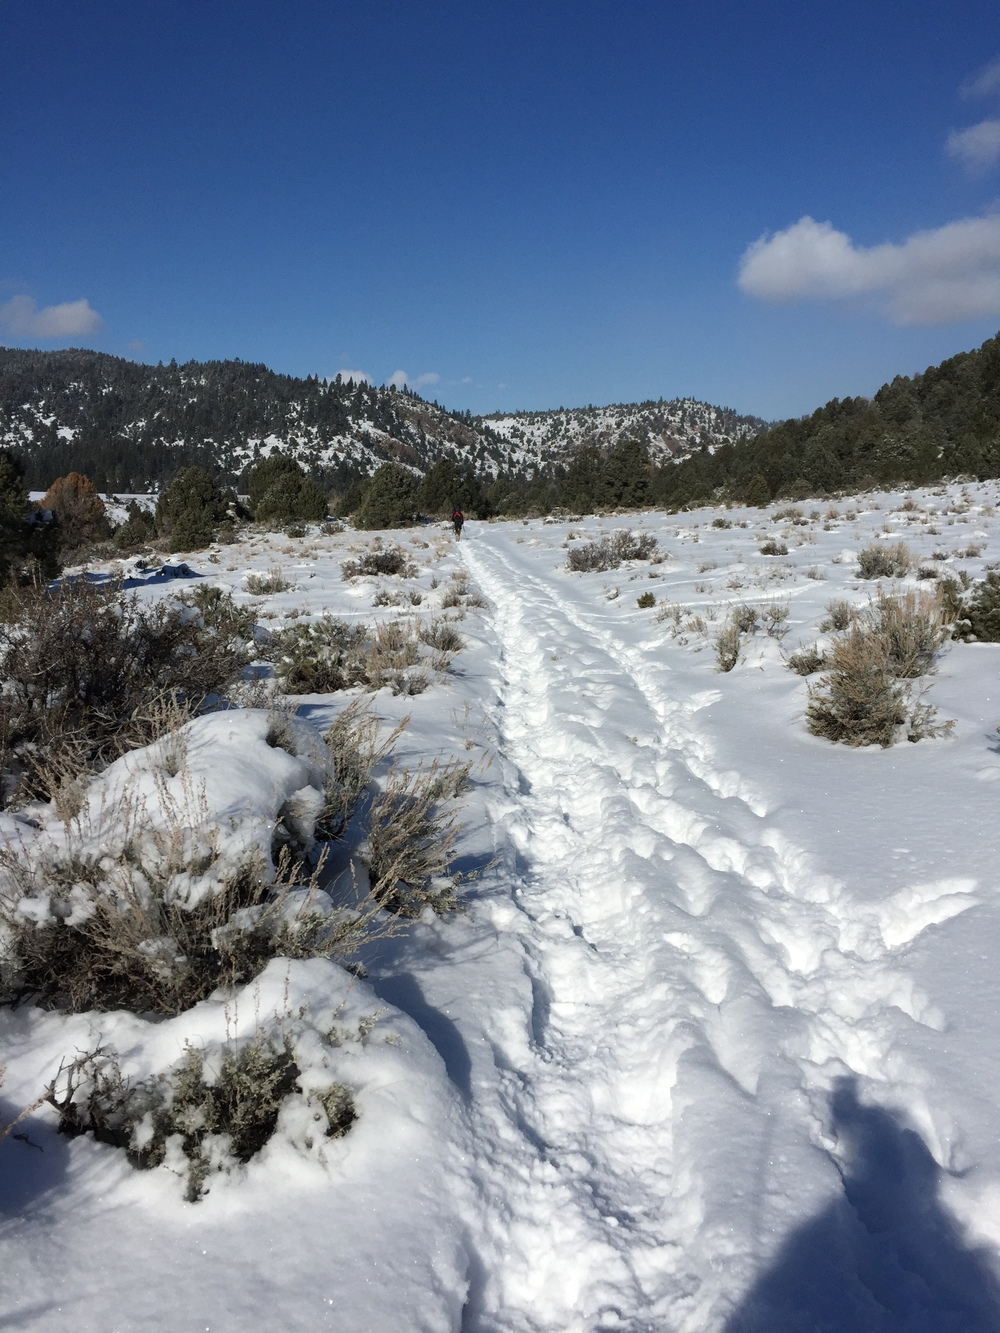 On a snowshoe hike on one of our favorite trails near the Carson River near Markleeville, CA